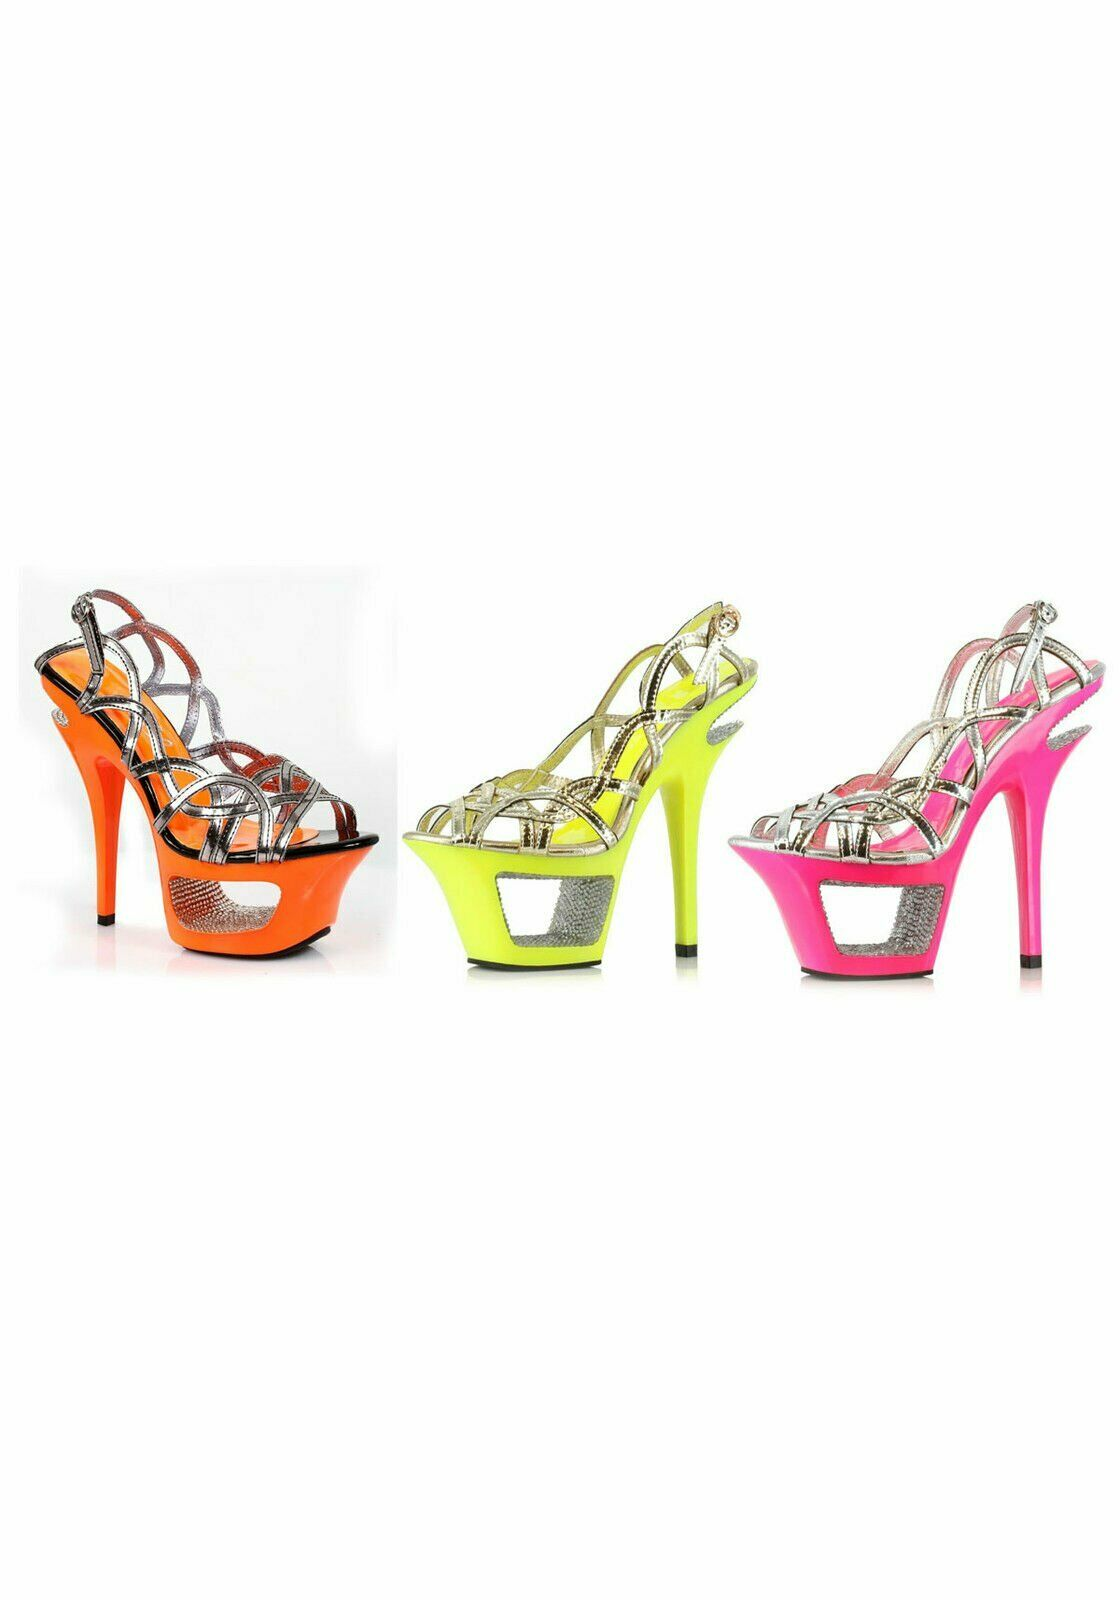 Ellie scarpe 604-ISLA 6 Inch Neon Cut Out Heel With Rhinestone